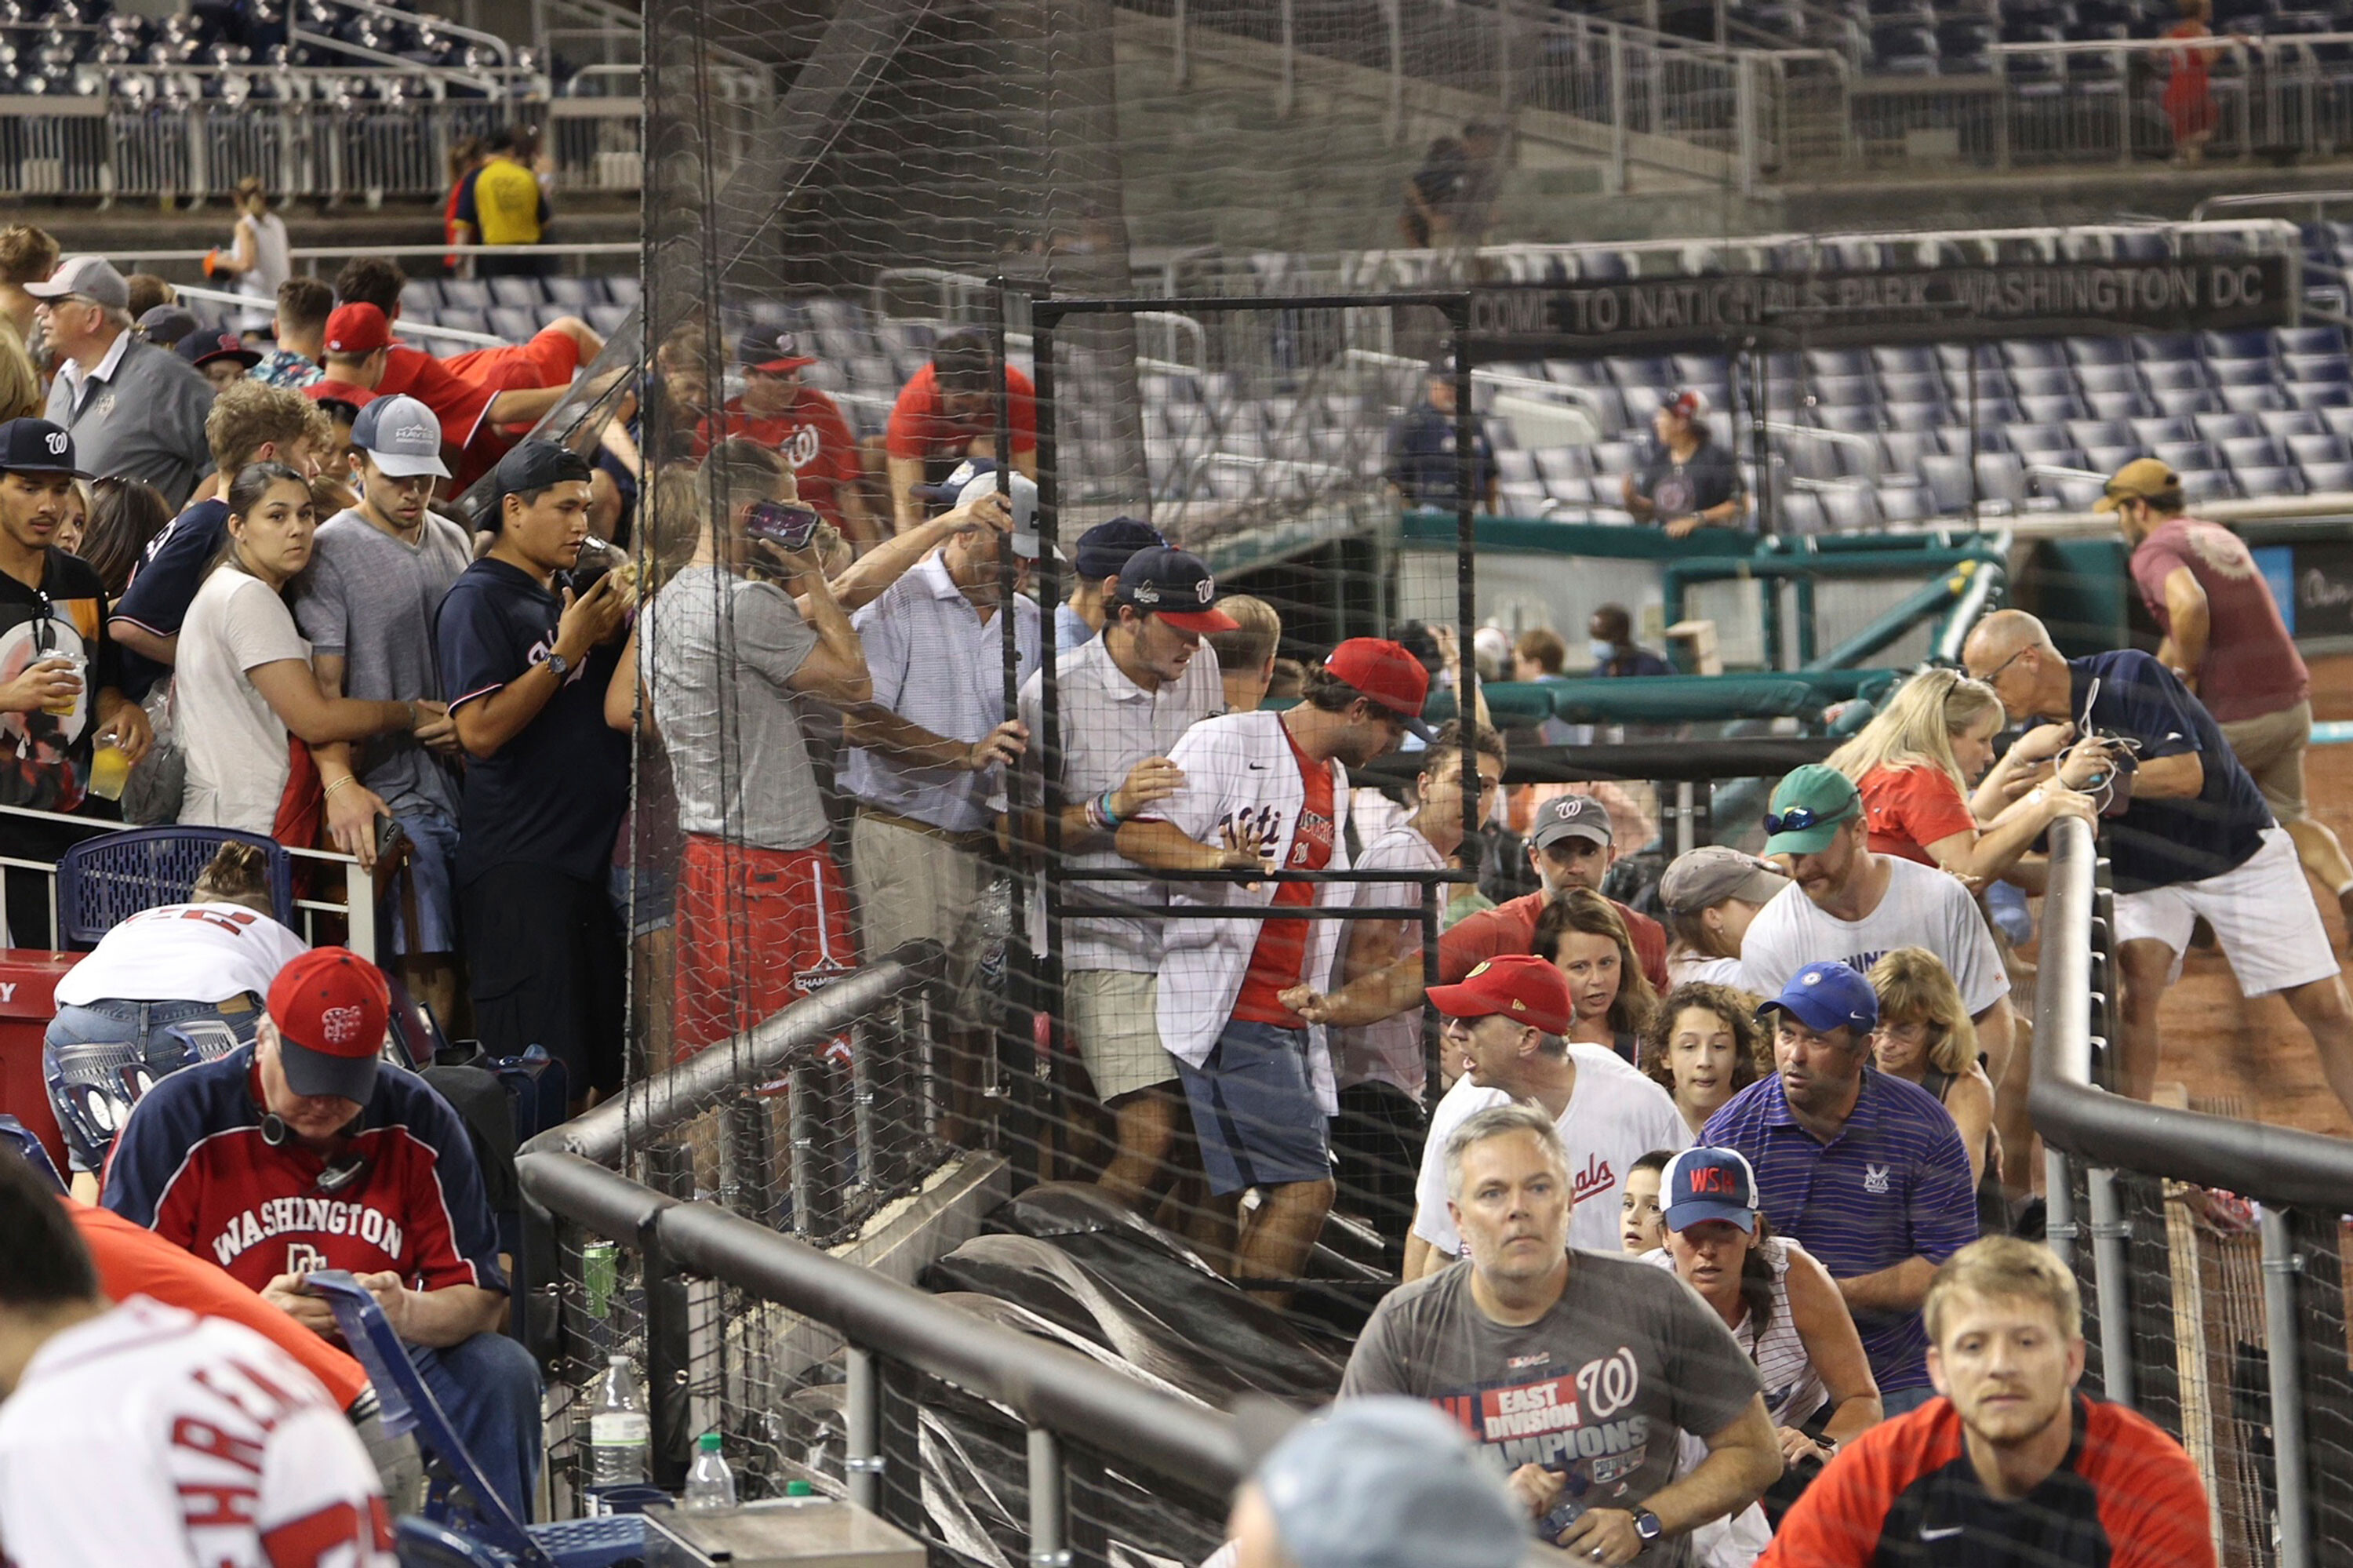 Police say 3 people were wounded in a shooting outside Nationals Park that sent players and fans scrambling during a game